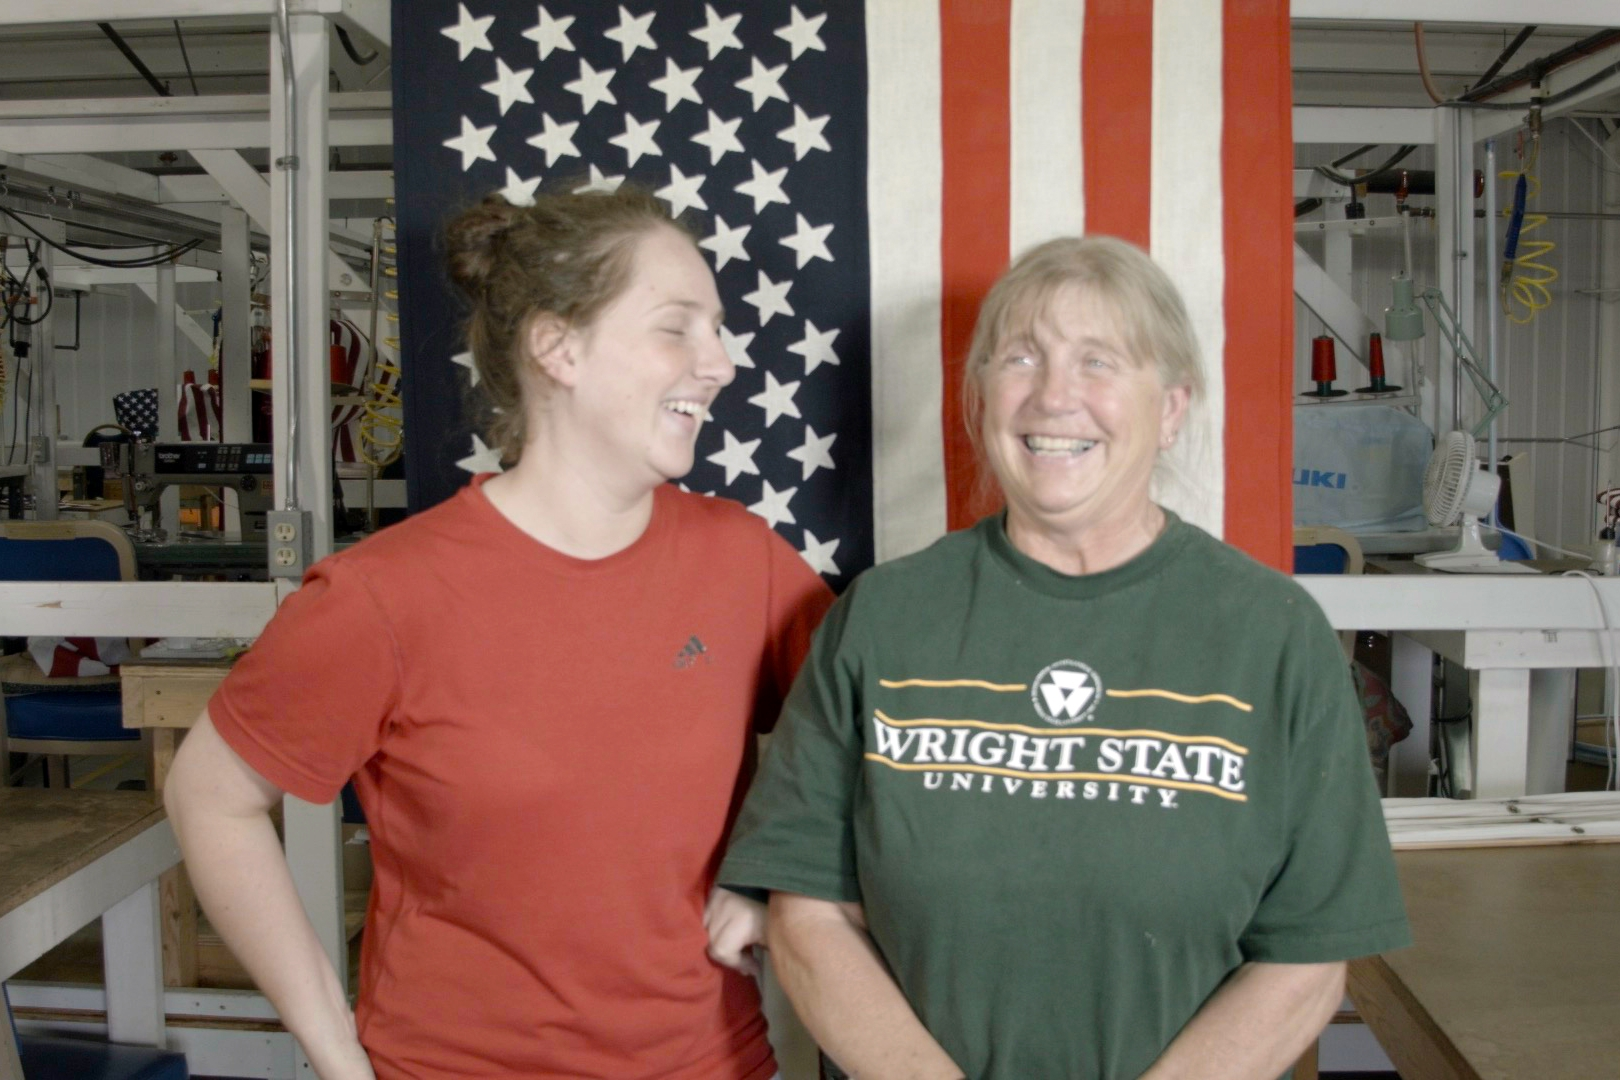 When we set out to produce American flags we wanted to find the best American manufacturer and our search took us back to our home state of Ohio where we met Lori and Loretta who have become our biggest supporters in our mission to create fine flags while helping to create jobs along the way.